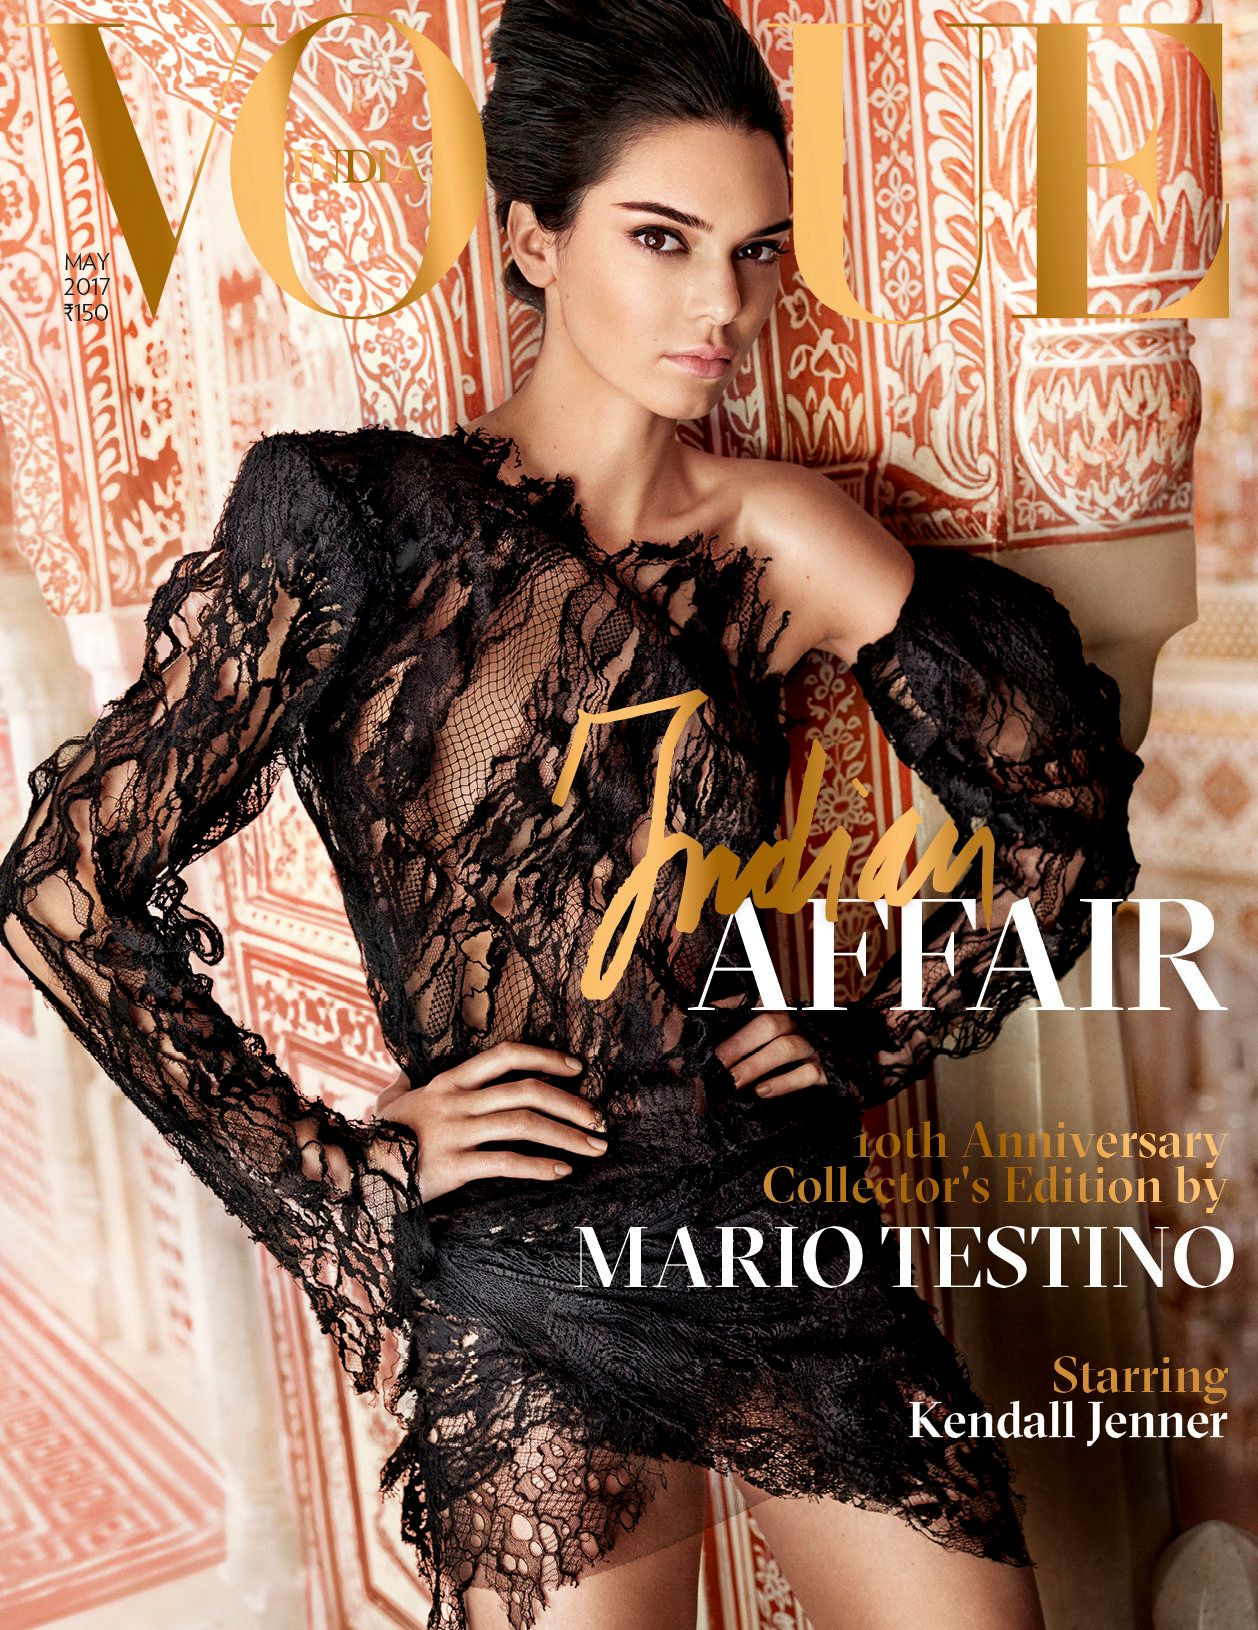 Kendall Jenner Collaborates With Mario Testino For Vogue India And The Photos Are